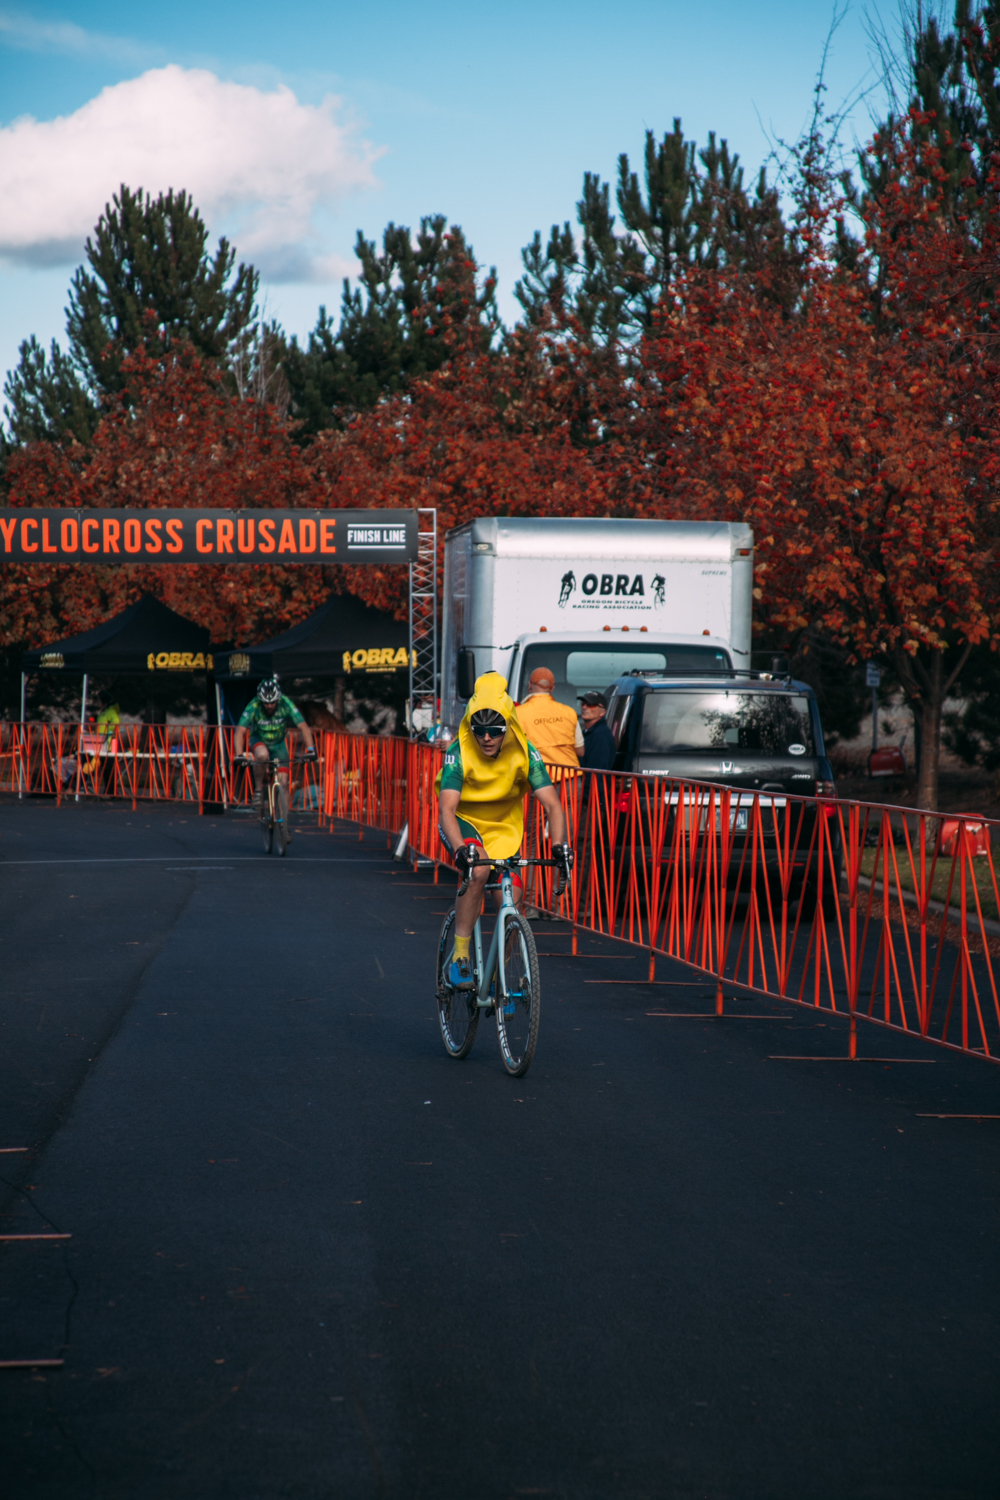 Cyclocross18_CCCX-Bend-Day2-343-fransencomesalive.jpg